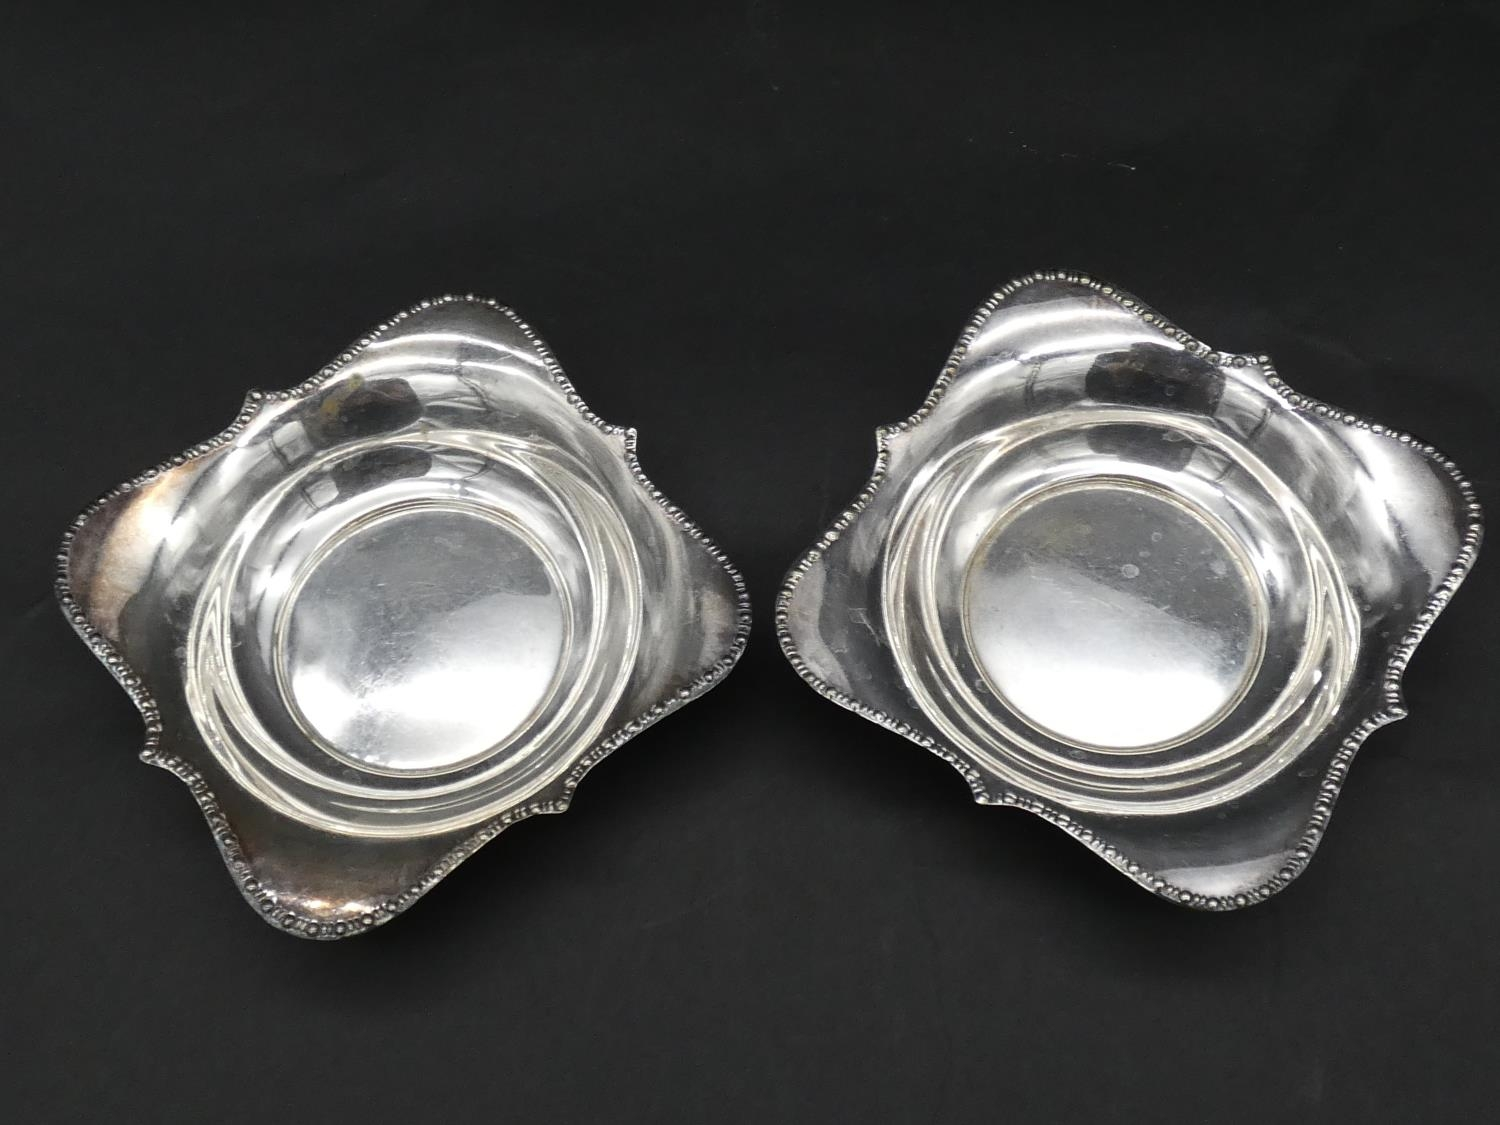 A collection of silver and silver plate items. Including a toast rack, two floral design dishes a - Image 5 of 11